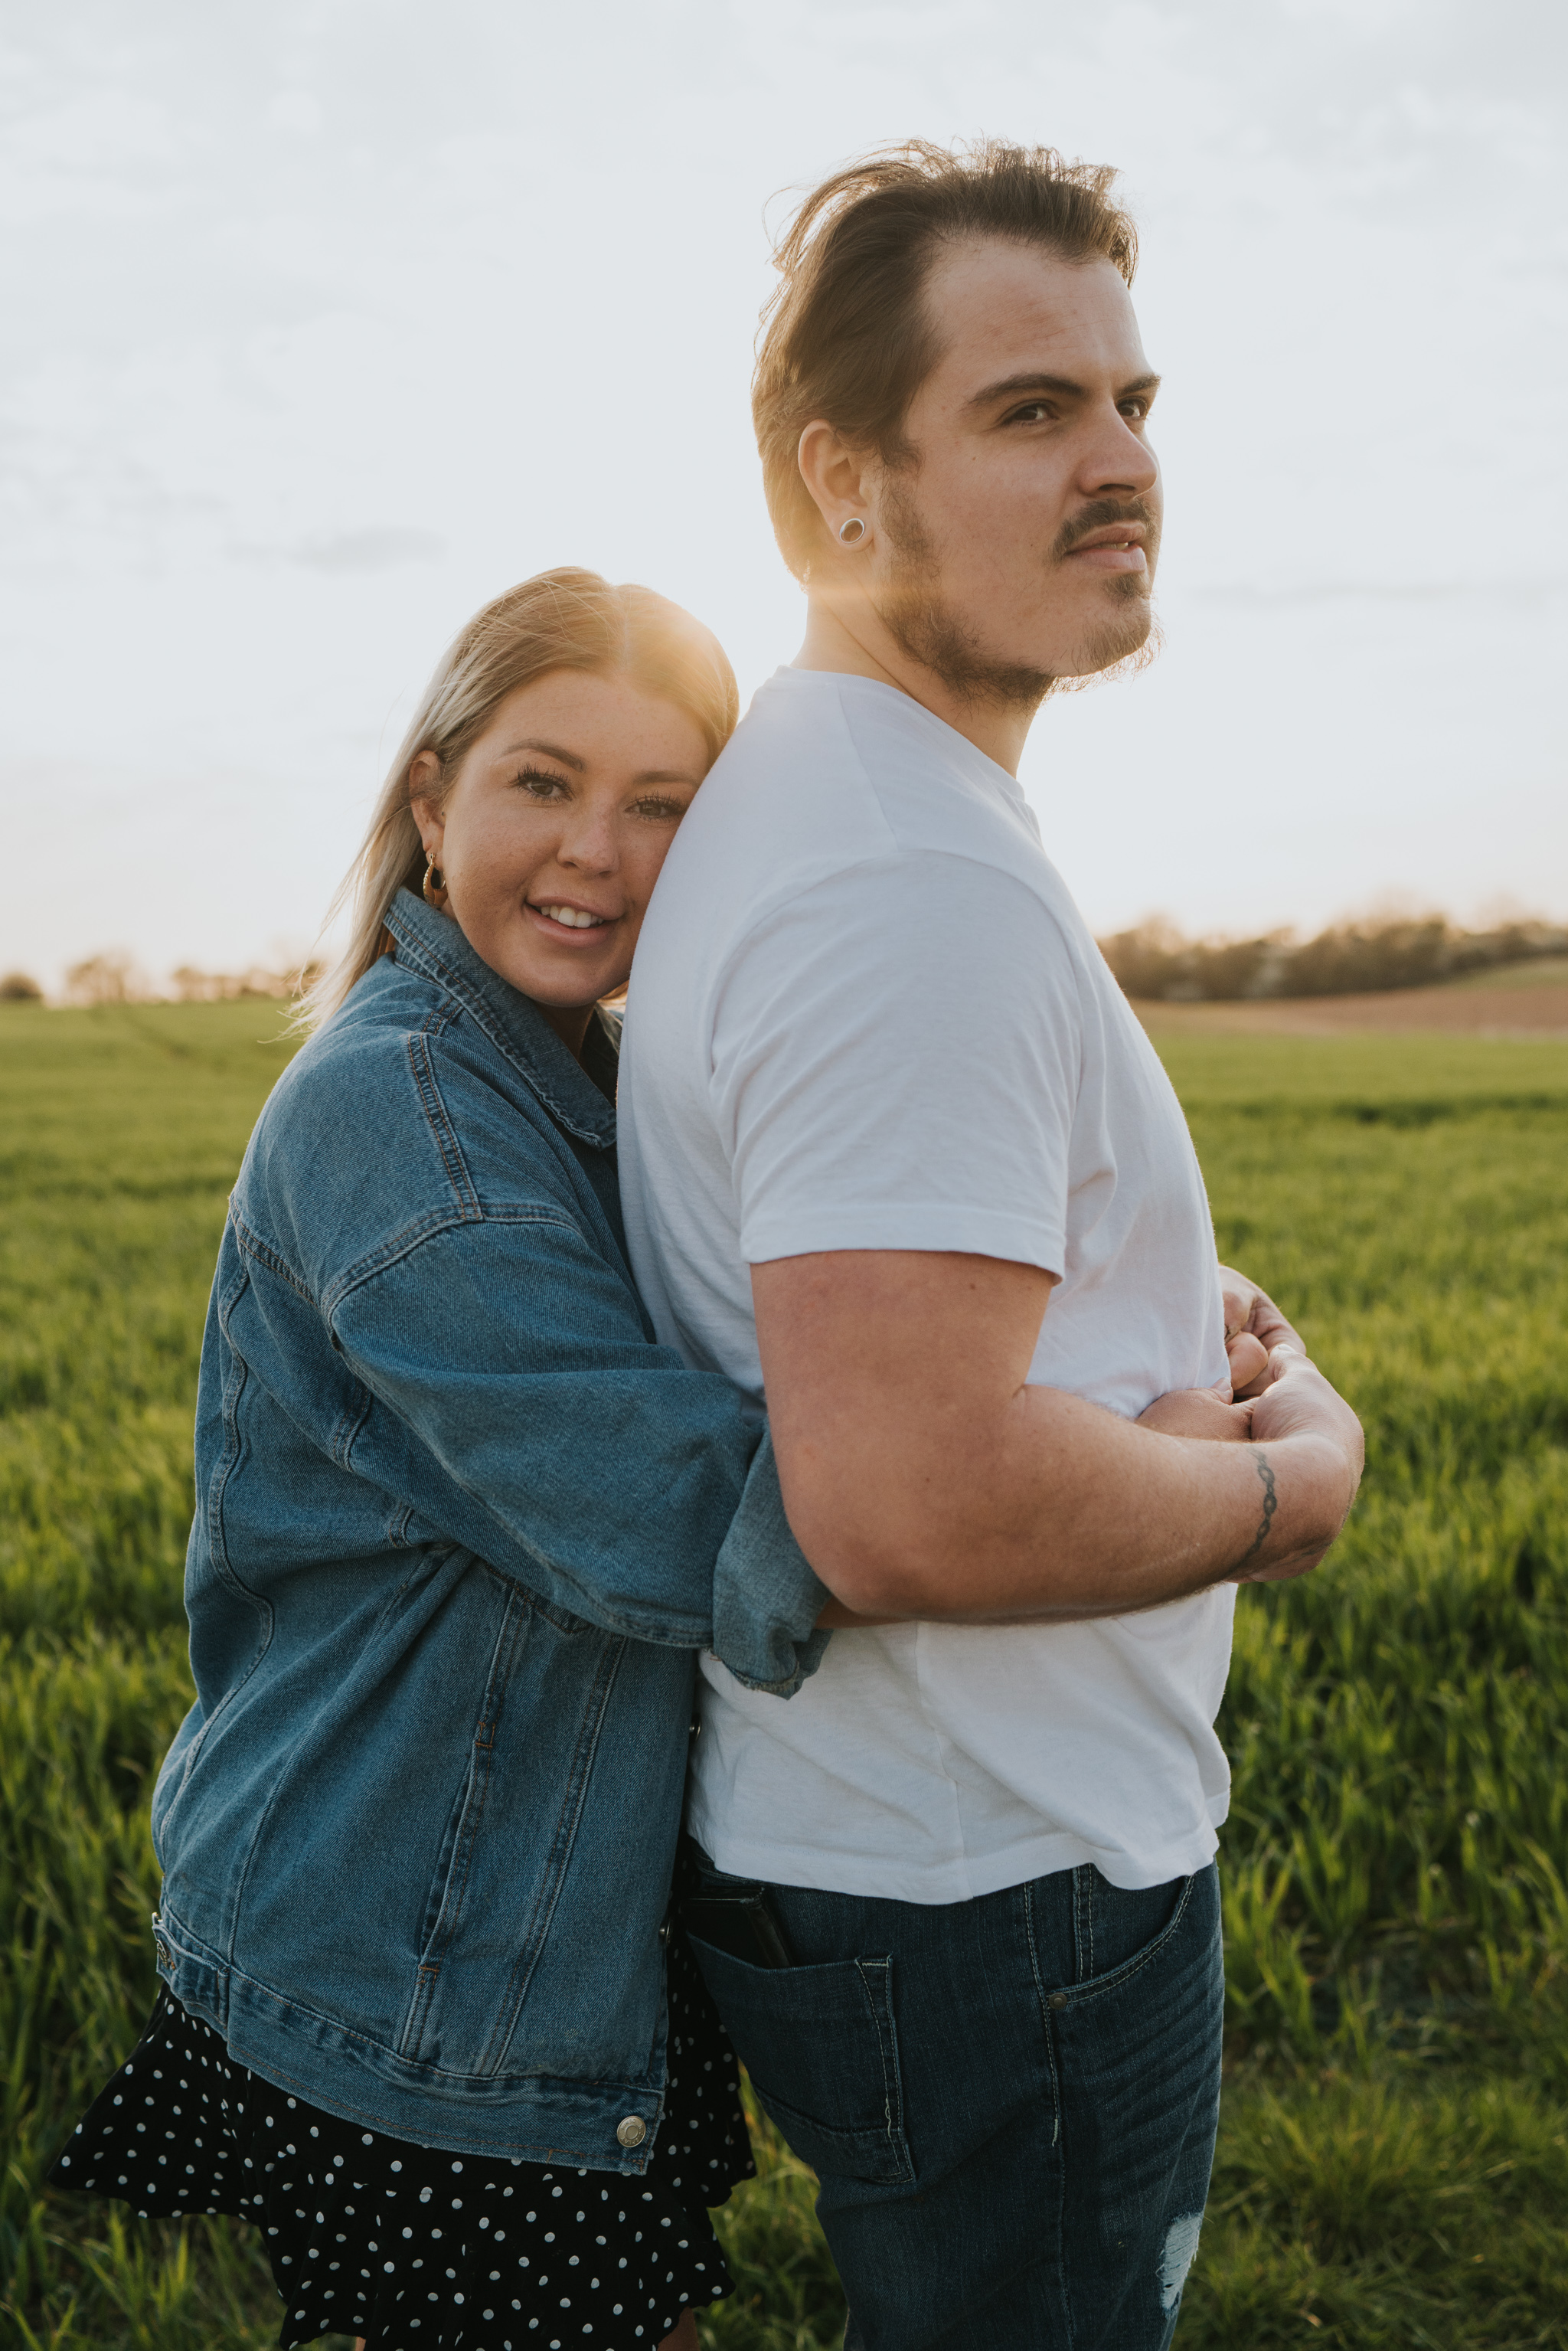 chloe-dan-pre-wedding-engagement-session-countryside-grace-elizabeth-colchester-essex-alternative-wedding-lifestyle-photographer-suffolk-norfolk-devon (40 of 50).jpg